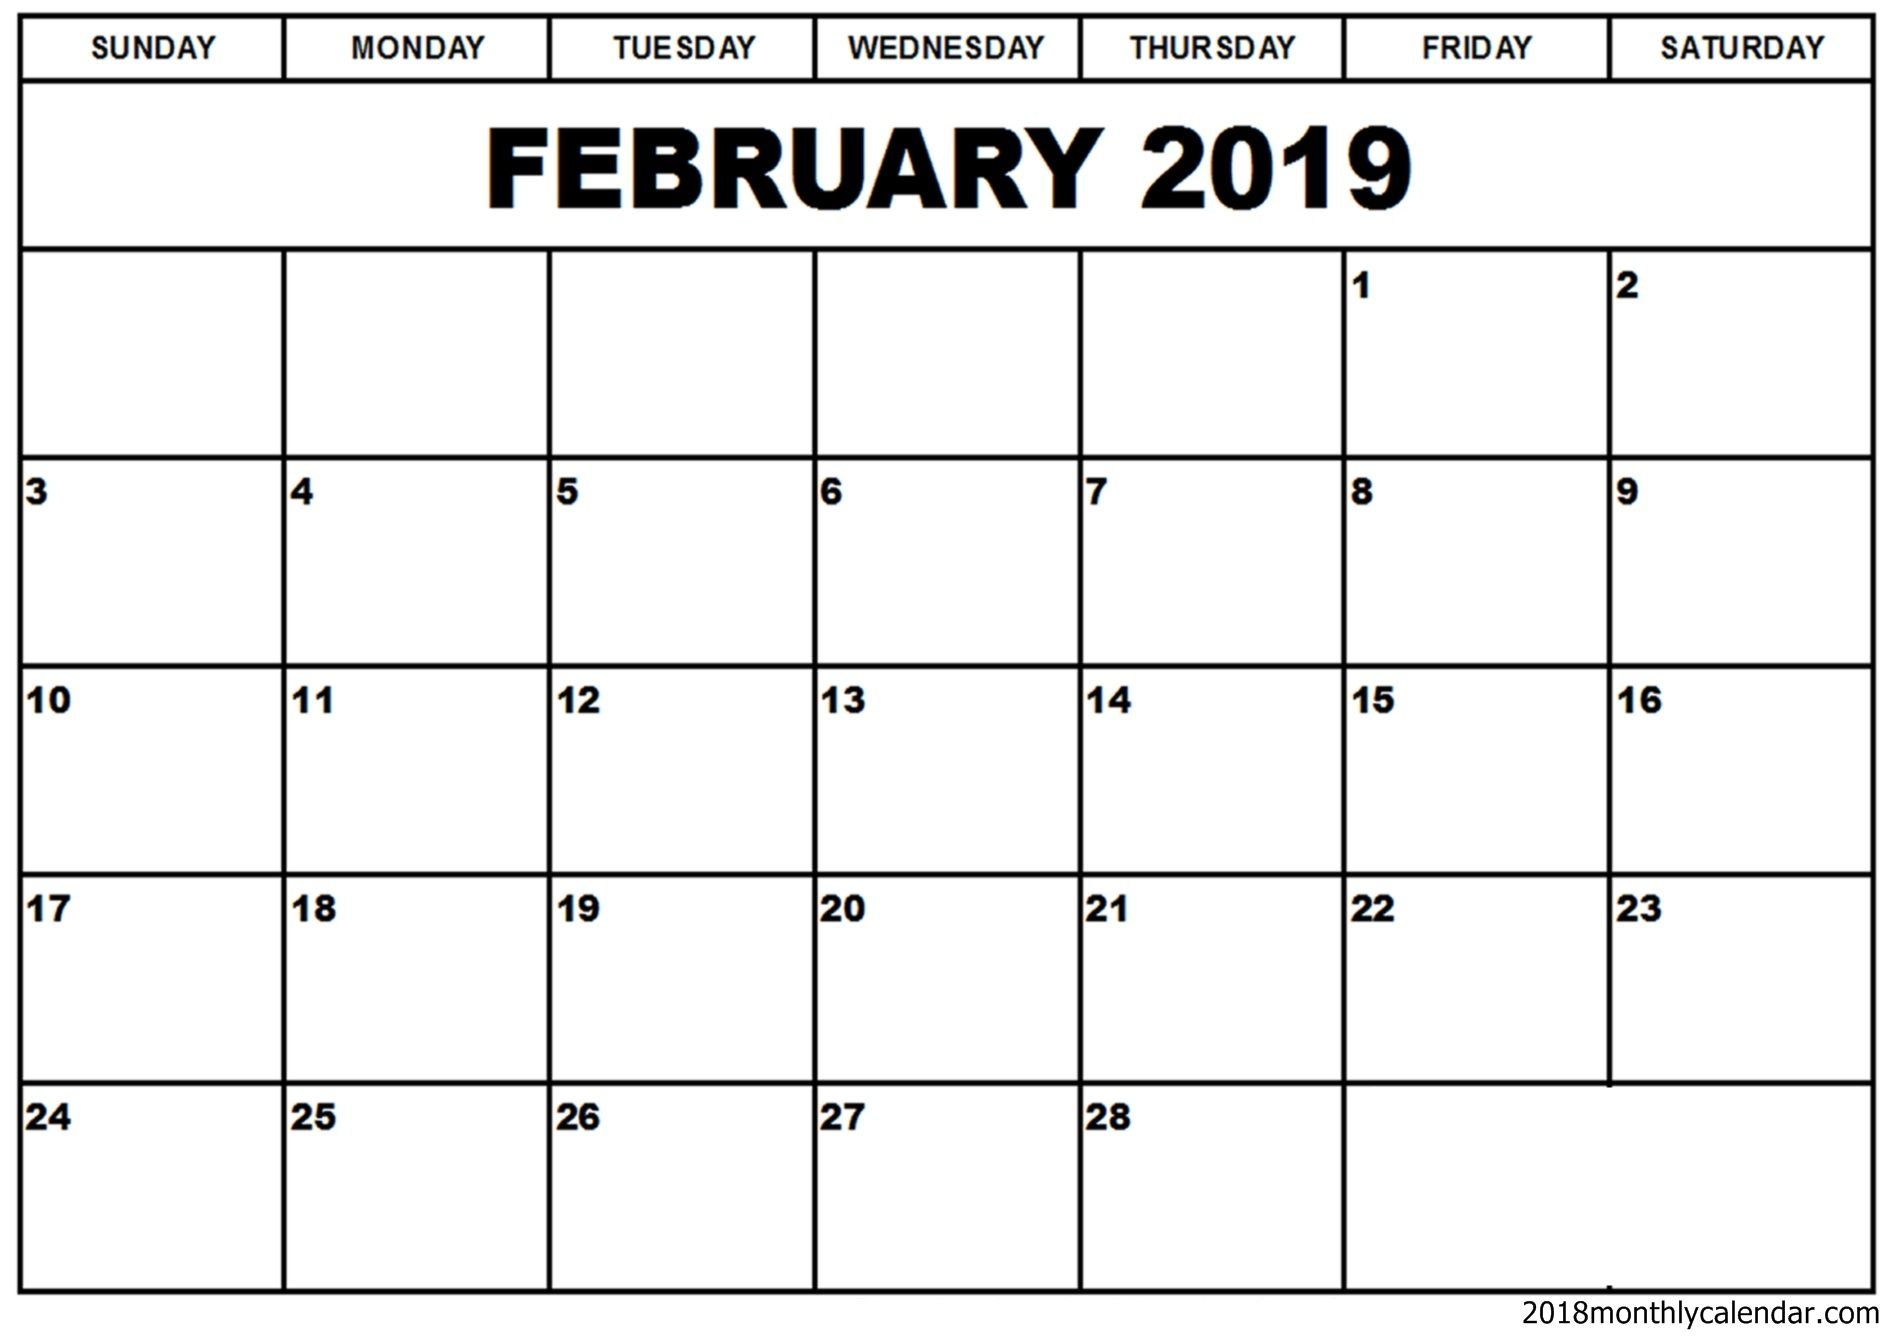 Calendar 2019 February Printable Template Download Editable